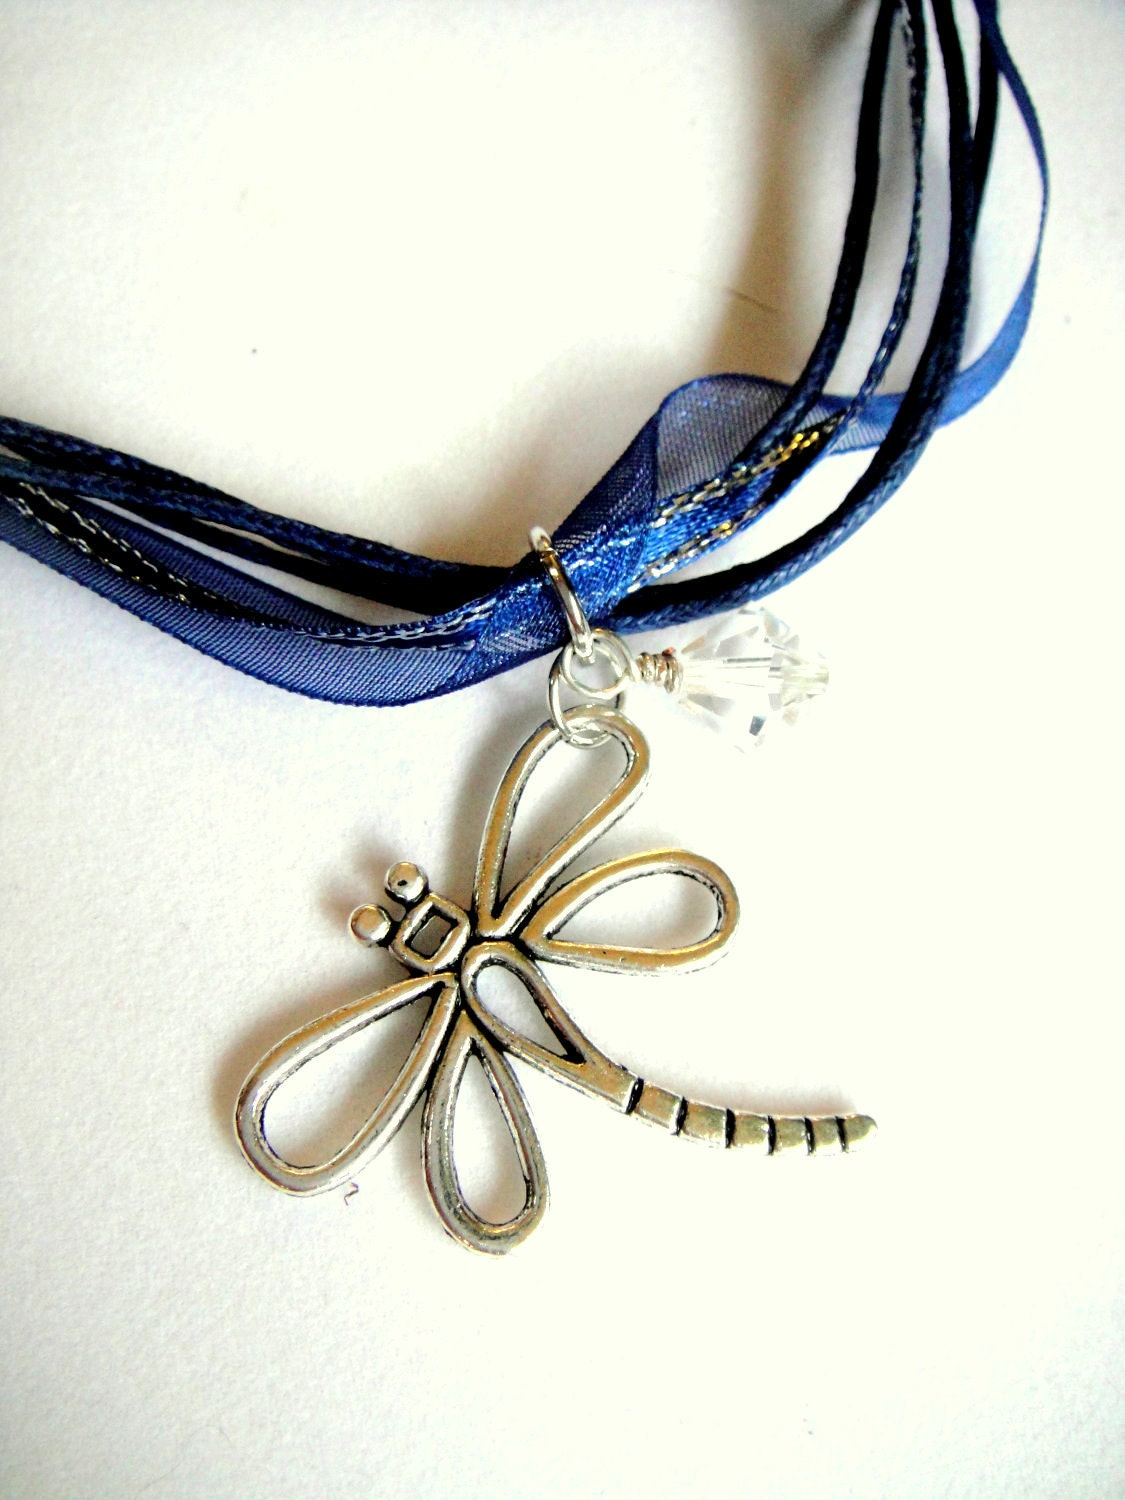 Dragonfly Necklace with Clear Crystal Bicone on Navy Ribbon Cord - mktENGINEER